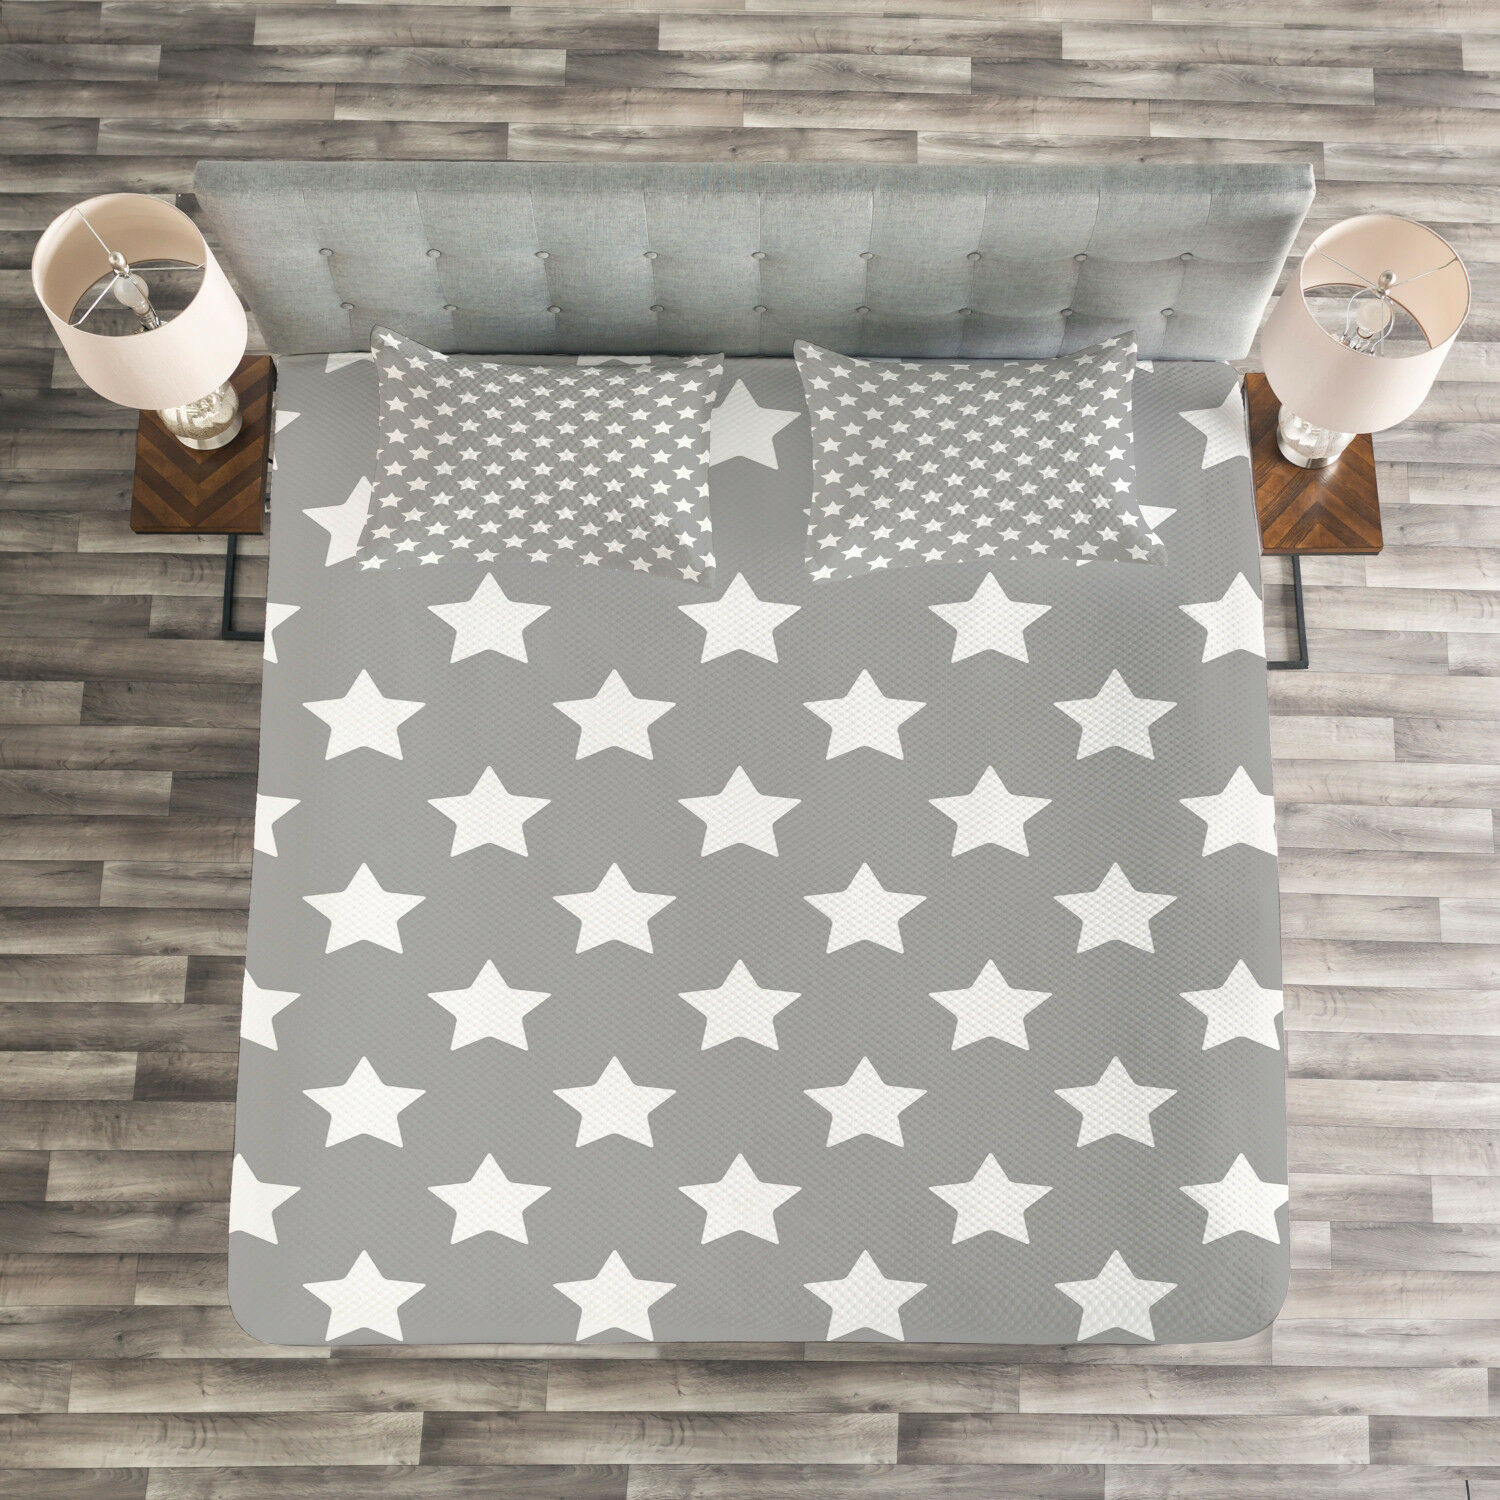 Modern Quilted Bedspread & Pillow Shams Set, Artwork with Big Stars Print